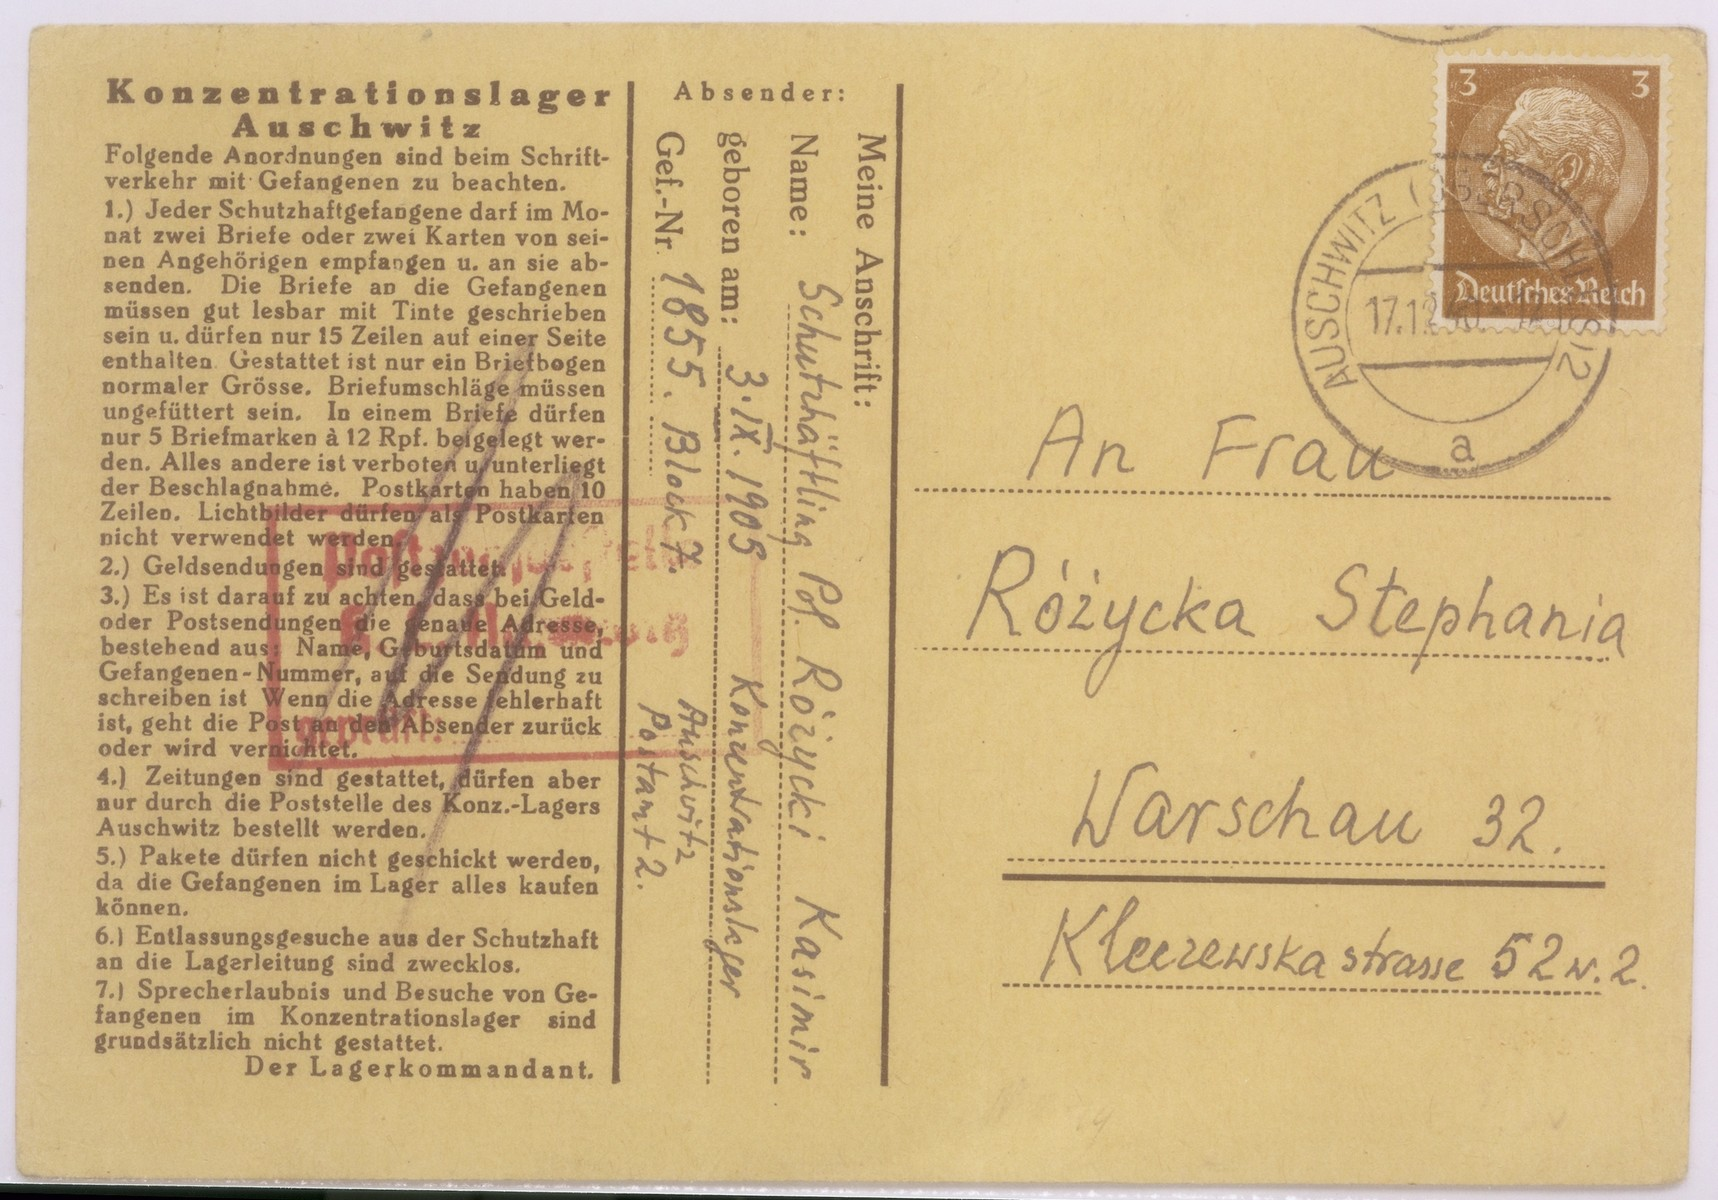 "Address side of a postcard sent by a Polish prisoner in Auschwitz, Kasimir Rozycki, to his wife, Stephania in Warsaw.   The rules governing the sending and receiving of letters and packages by prisoners are listed at the left side of the card.  According to these rules, an inmate was allowed to receive letters from his relatives once a month.  The letters had to be written in ink, be legible, and not more than 15 lines long.  They were to be mailed in unsealed envelopes and were not to exceed a certain size.  The text on a postcard could not be more than 10 lines long; picture postcards were forbidden.  Nothing was to be enclosed in letters, and prisoners were not allowed to receive packages ""because prisoners can purchase everything they need in the camp.""  Newspapers could be received by prisoners, however, so long as they were ordered through the camp administration."